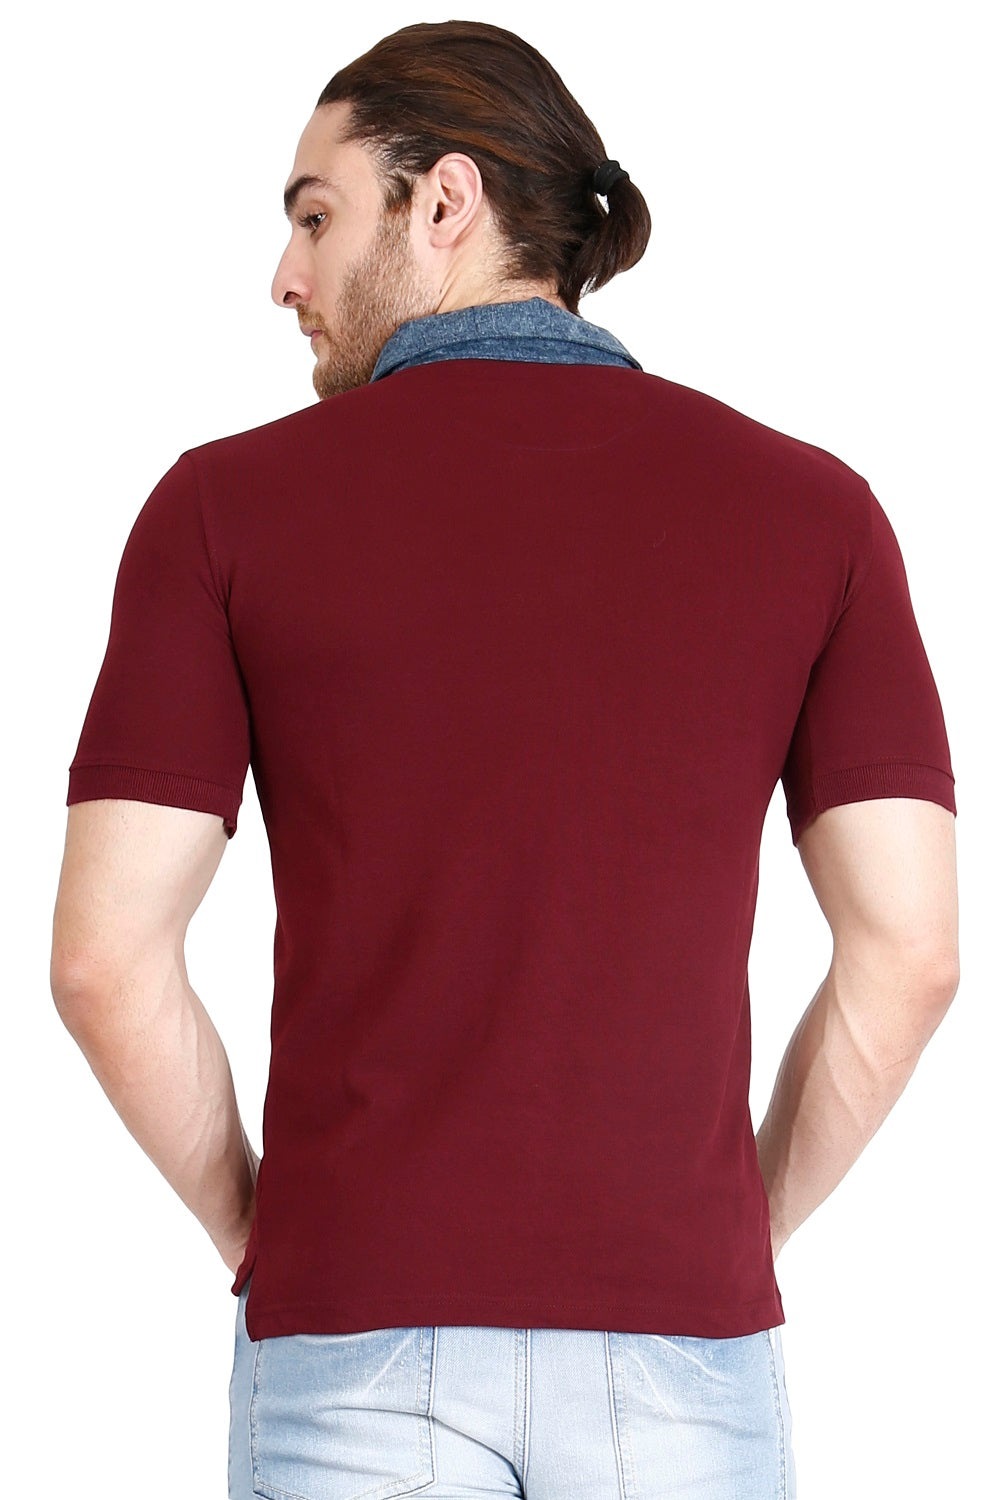 Hunt and Howe Men's Maroon Solid Polo T-Shirt